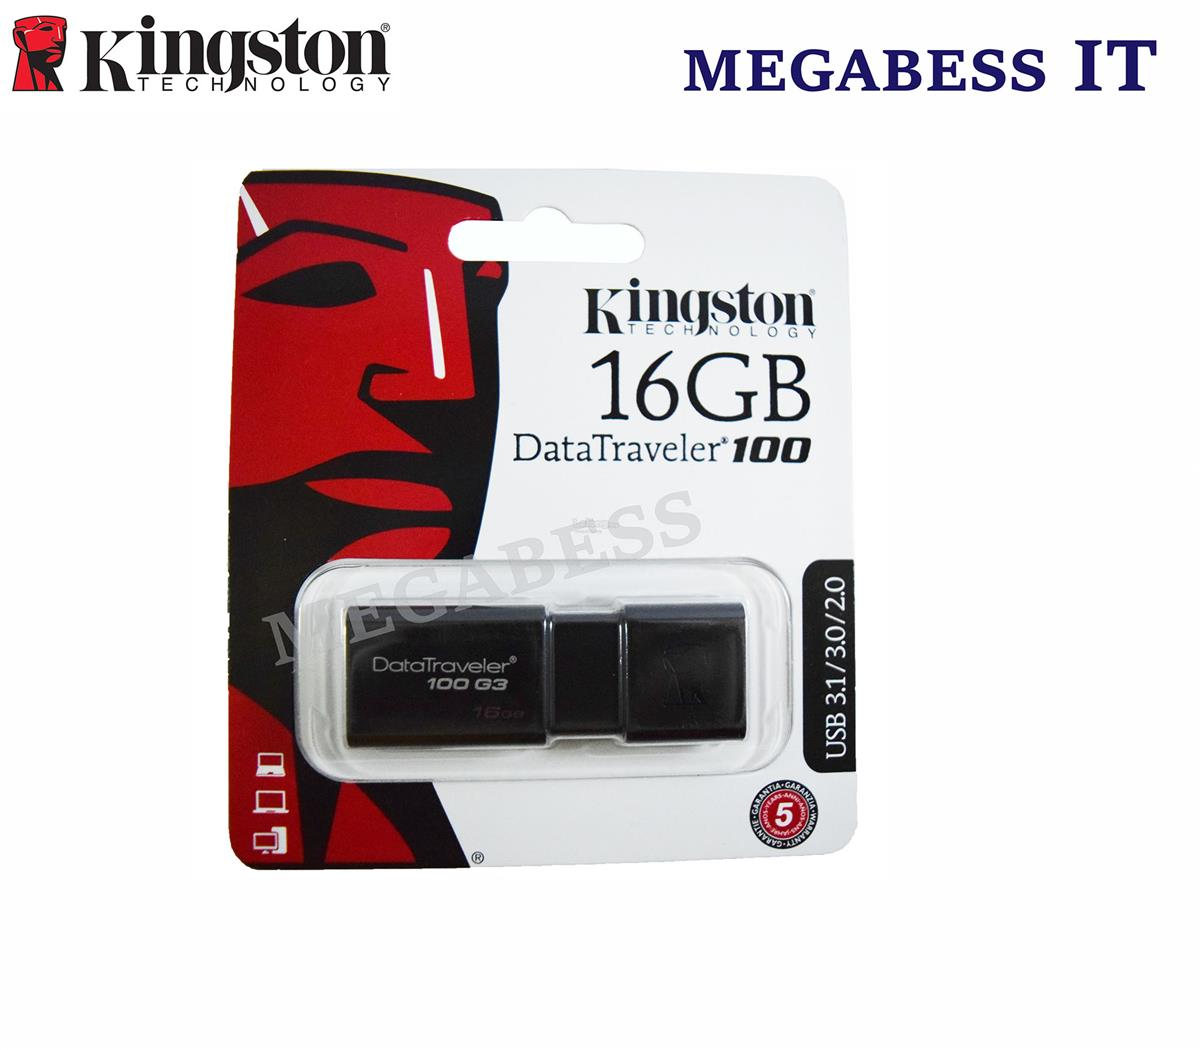 KINGSTON PEN DRIVE 16GB DRIVER DOWNLOAD